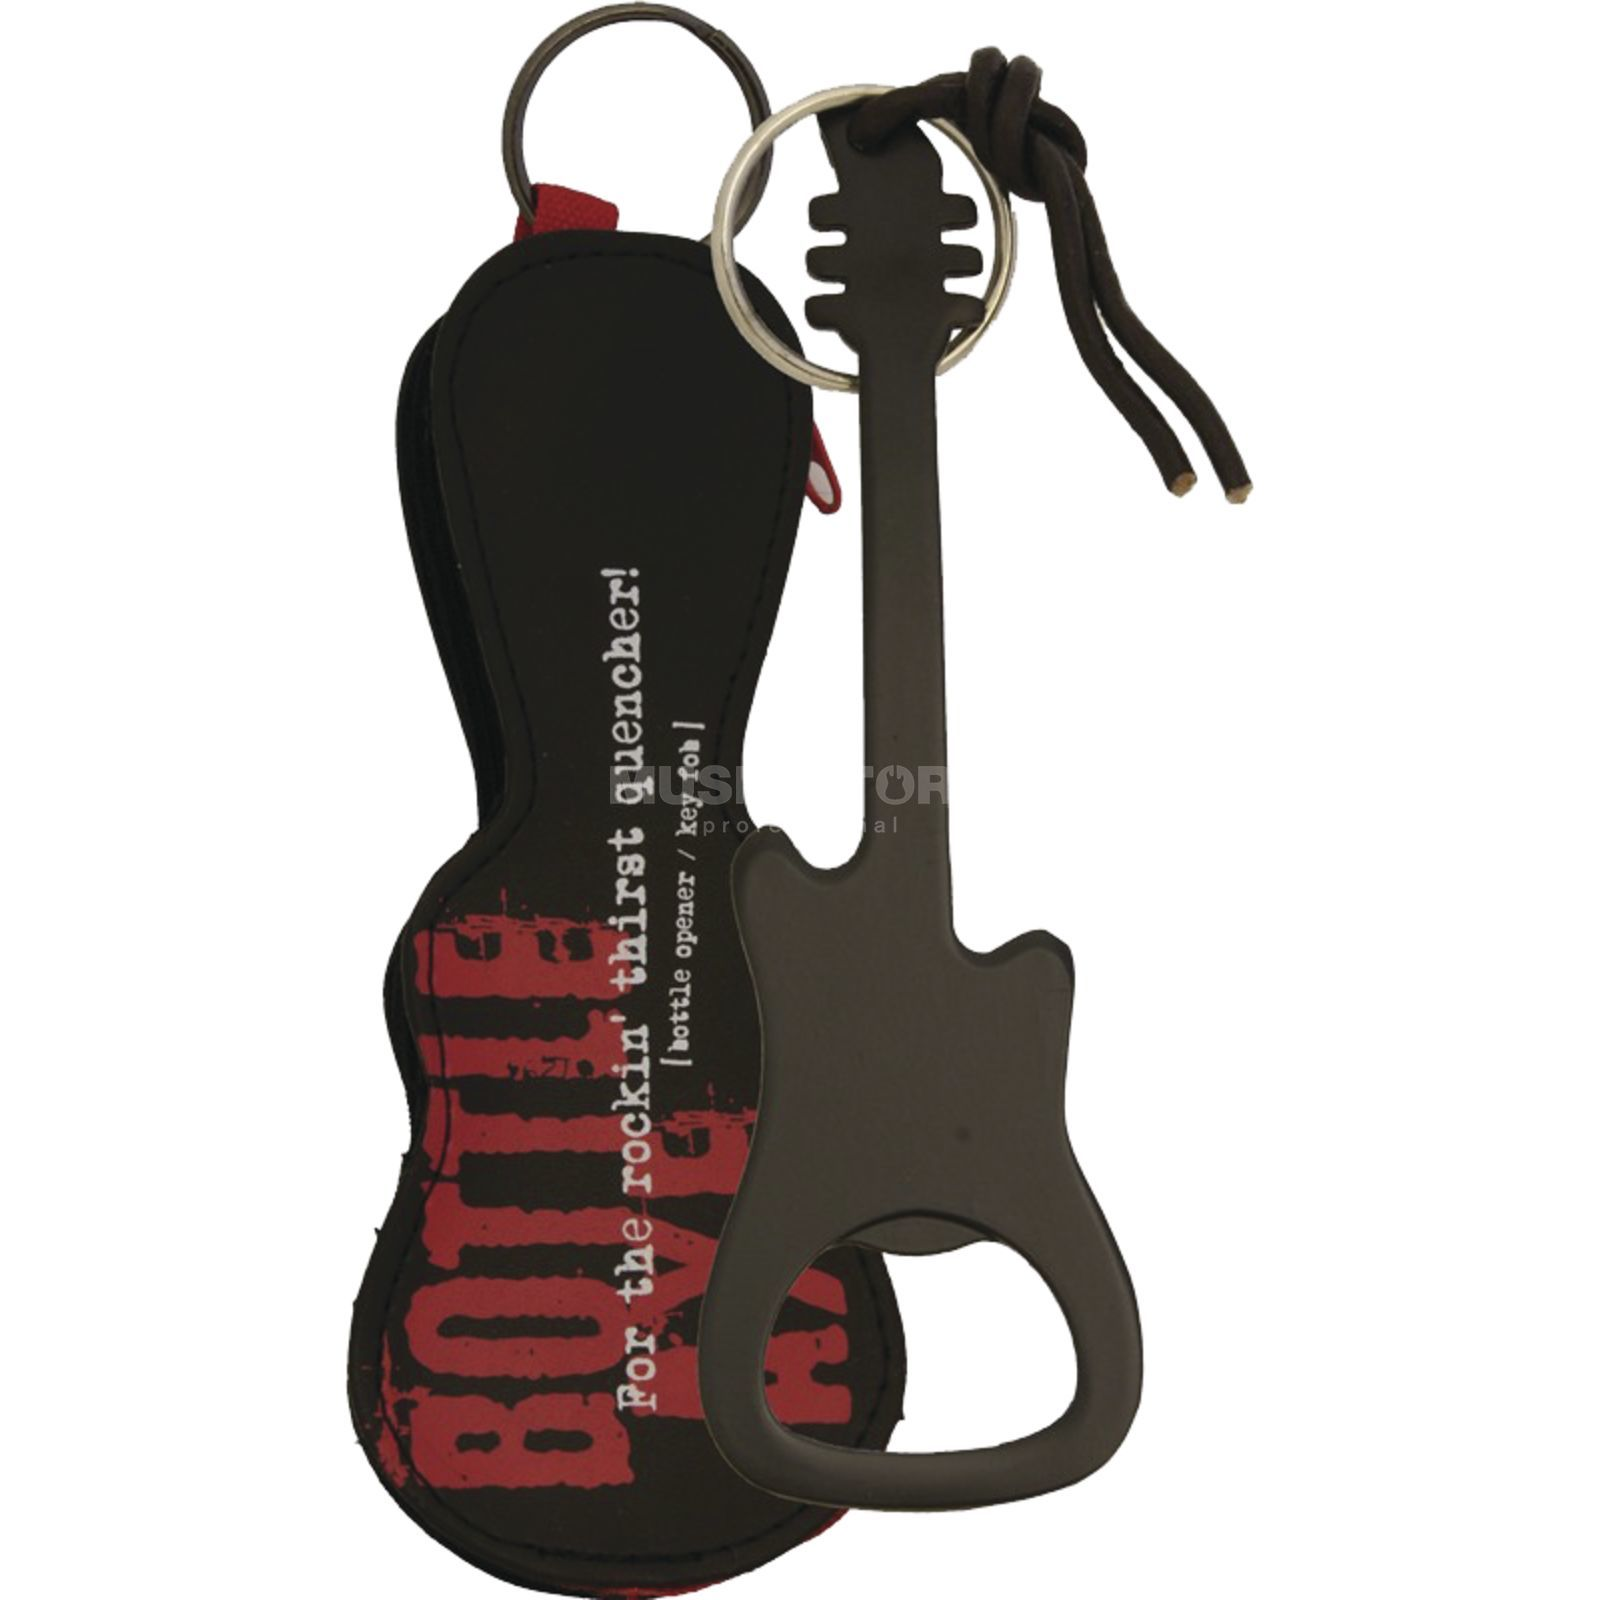 Music Sales Bottle Opener/Key Fob Black Produktbillede